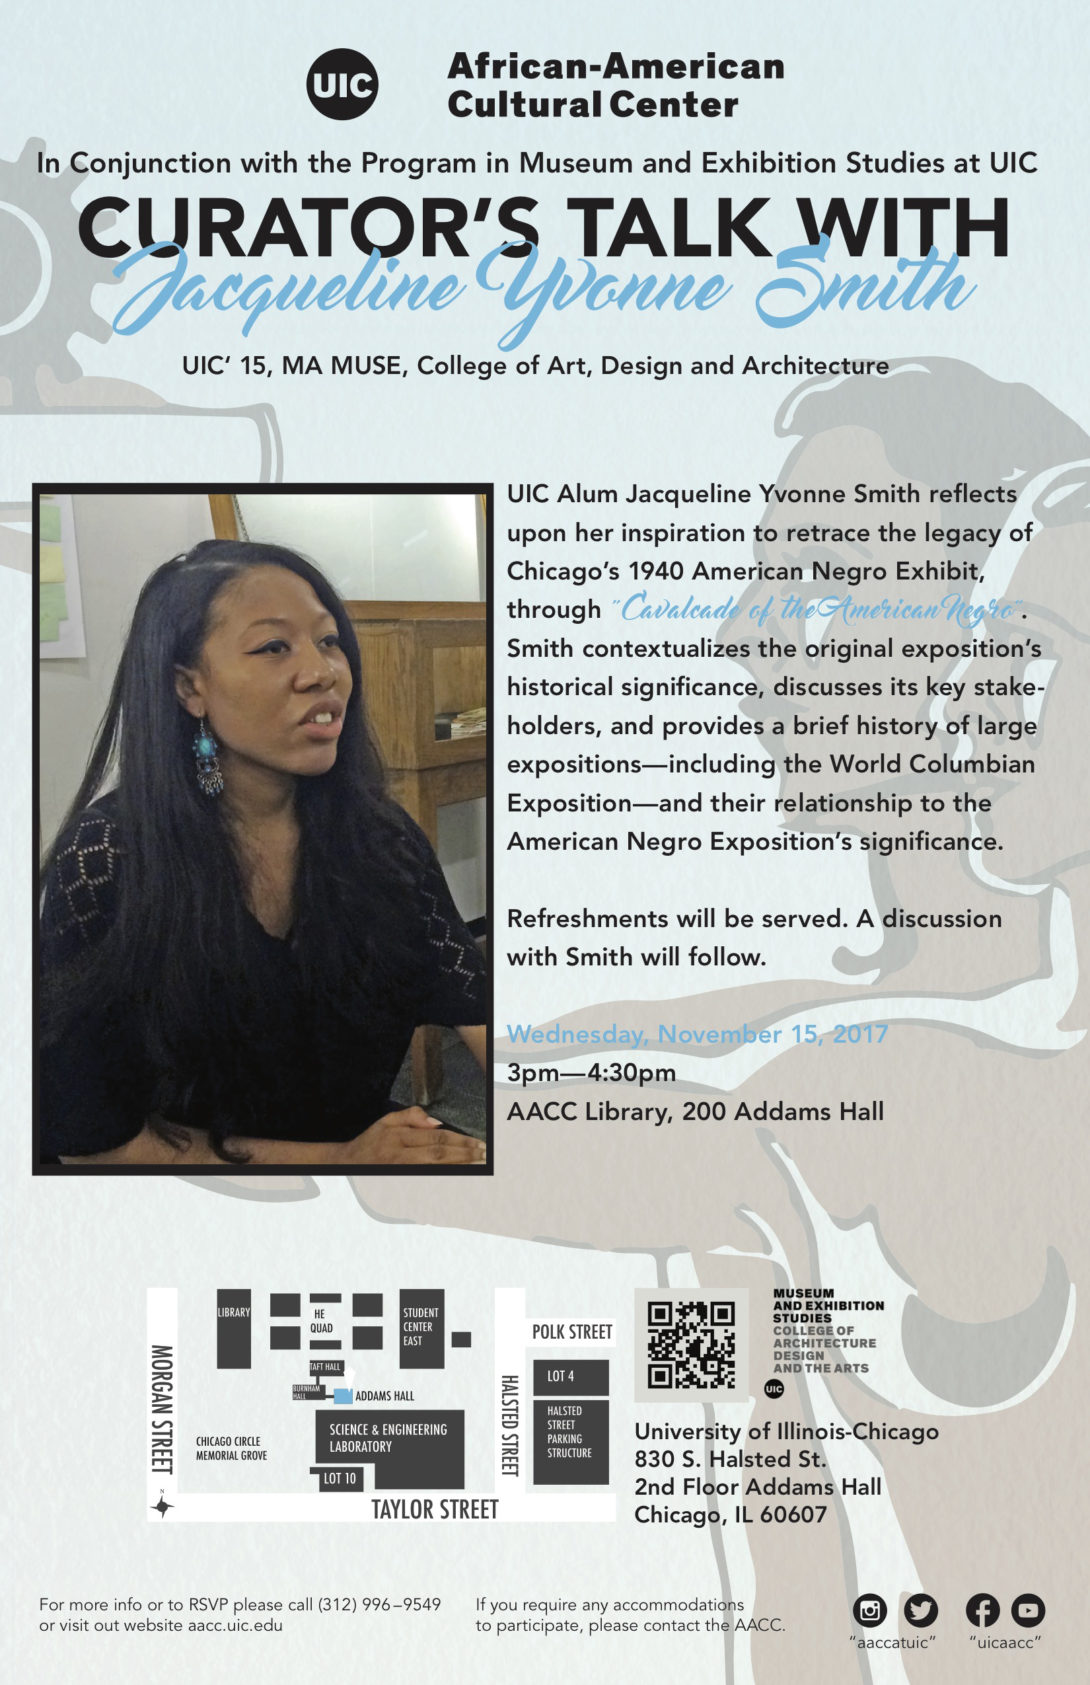 Curator's Talk with Jacqueline Yvonne Smith